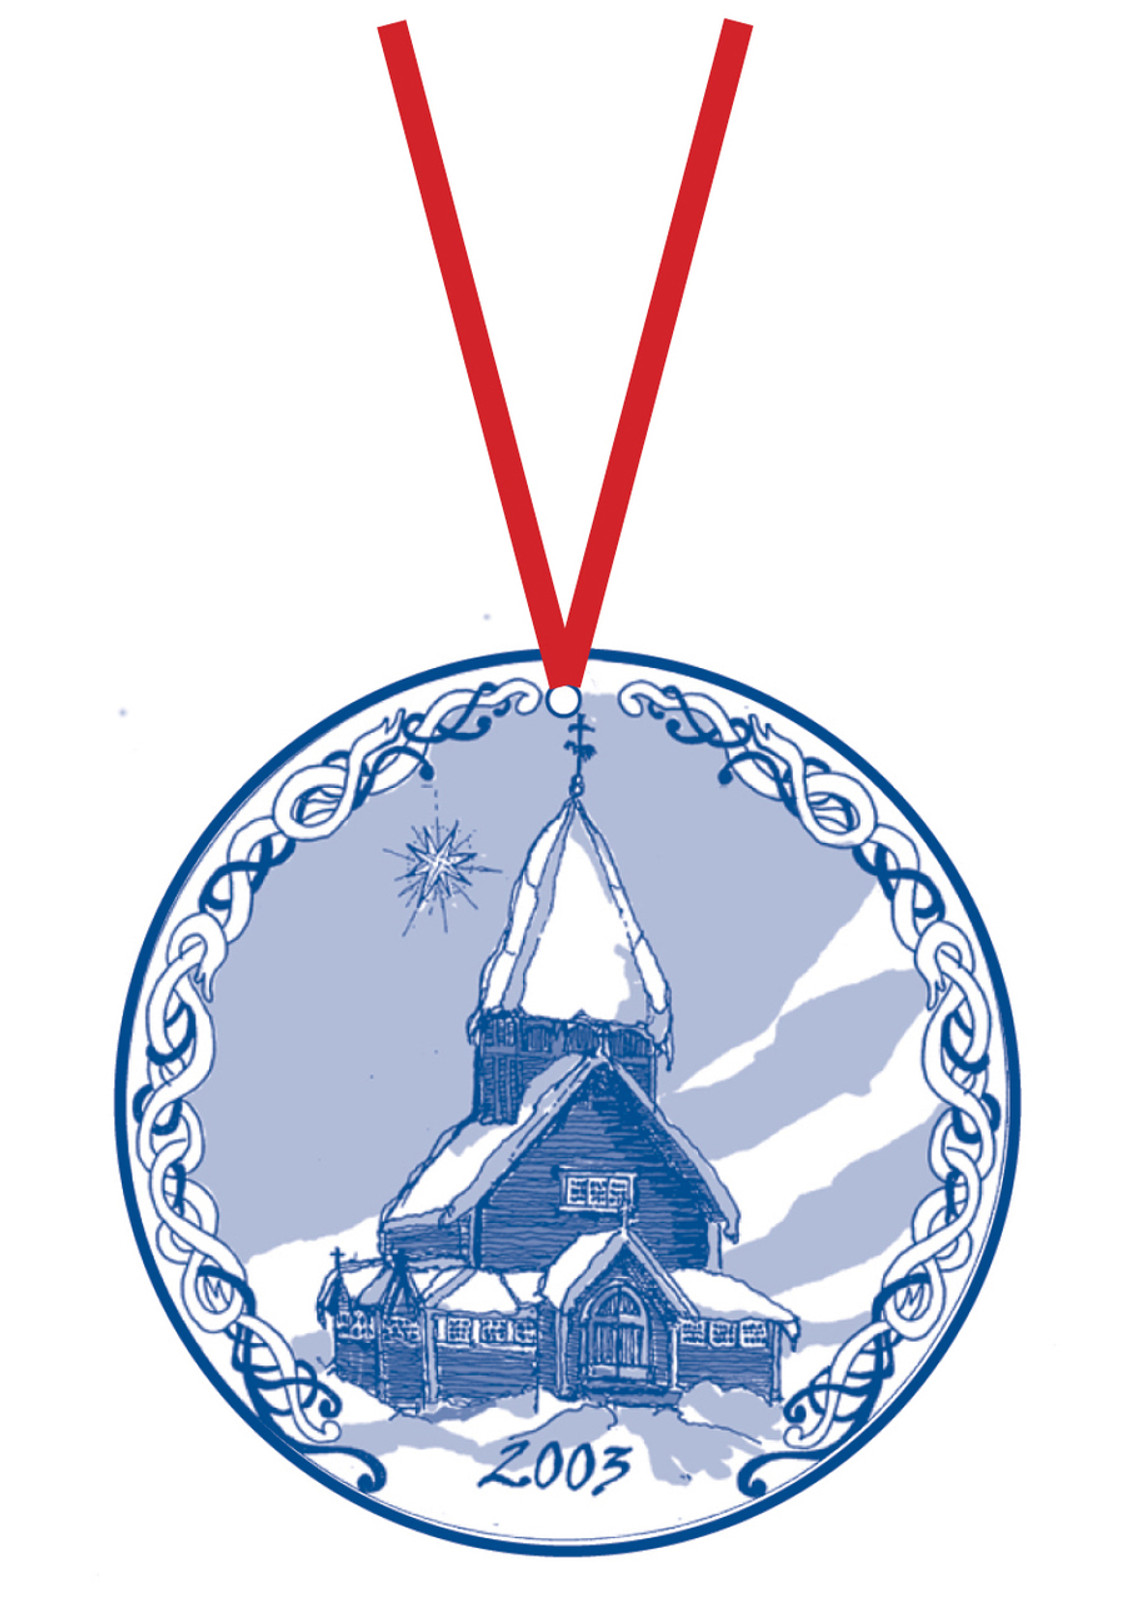 2003 Stav Church Ornament - Roldal. Made by Norse Traditions and available at The Nordic Shop.